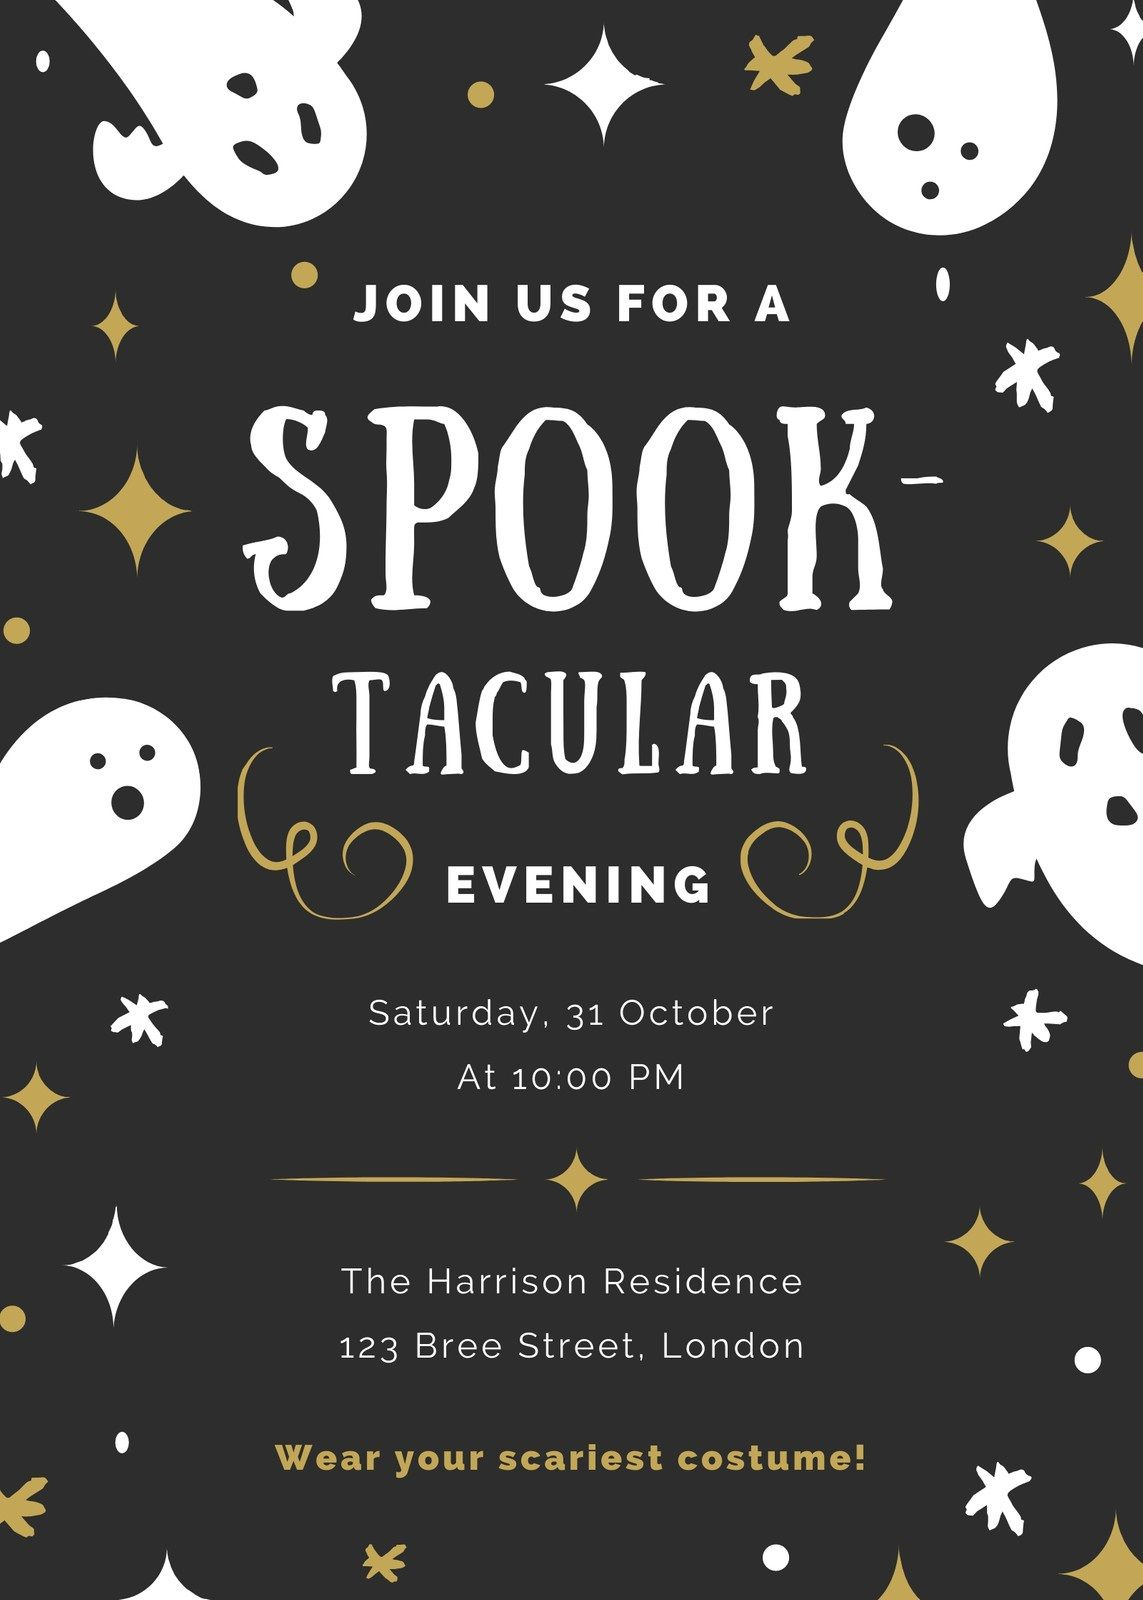 007 Frightening Halloween Party Invite Template Highest Quality  Spooky Invitation Free Printable Birthday DownloadFull